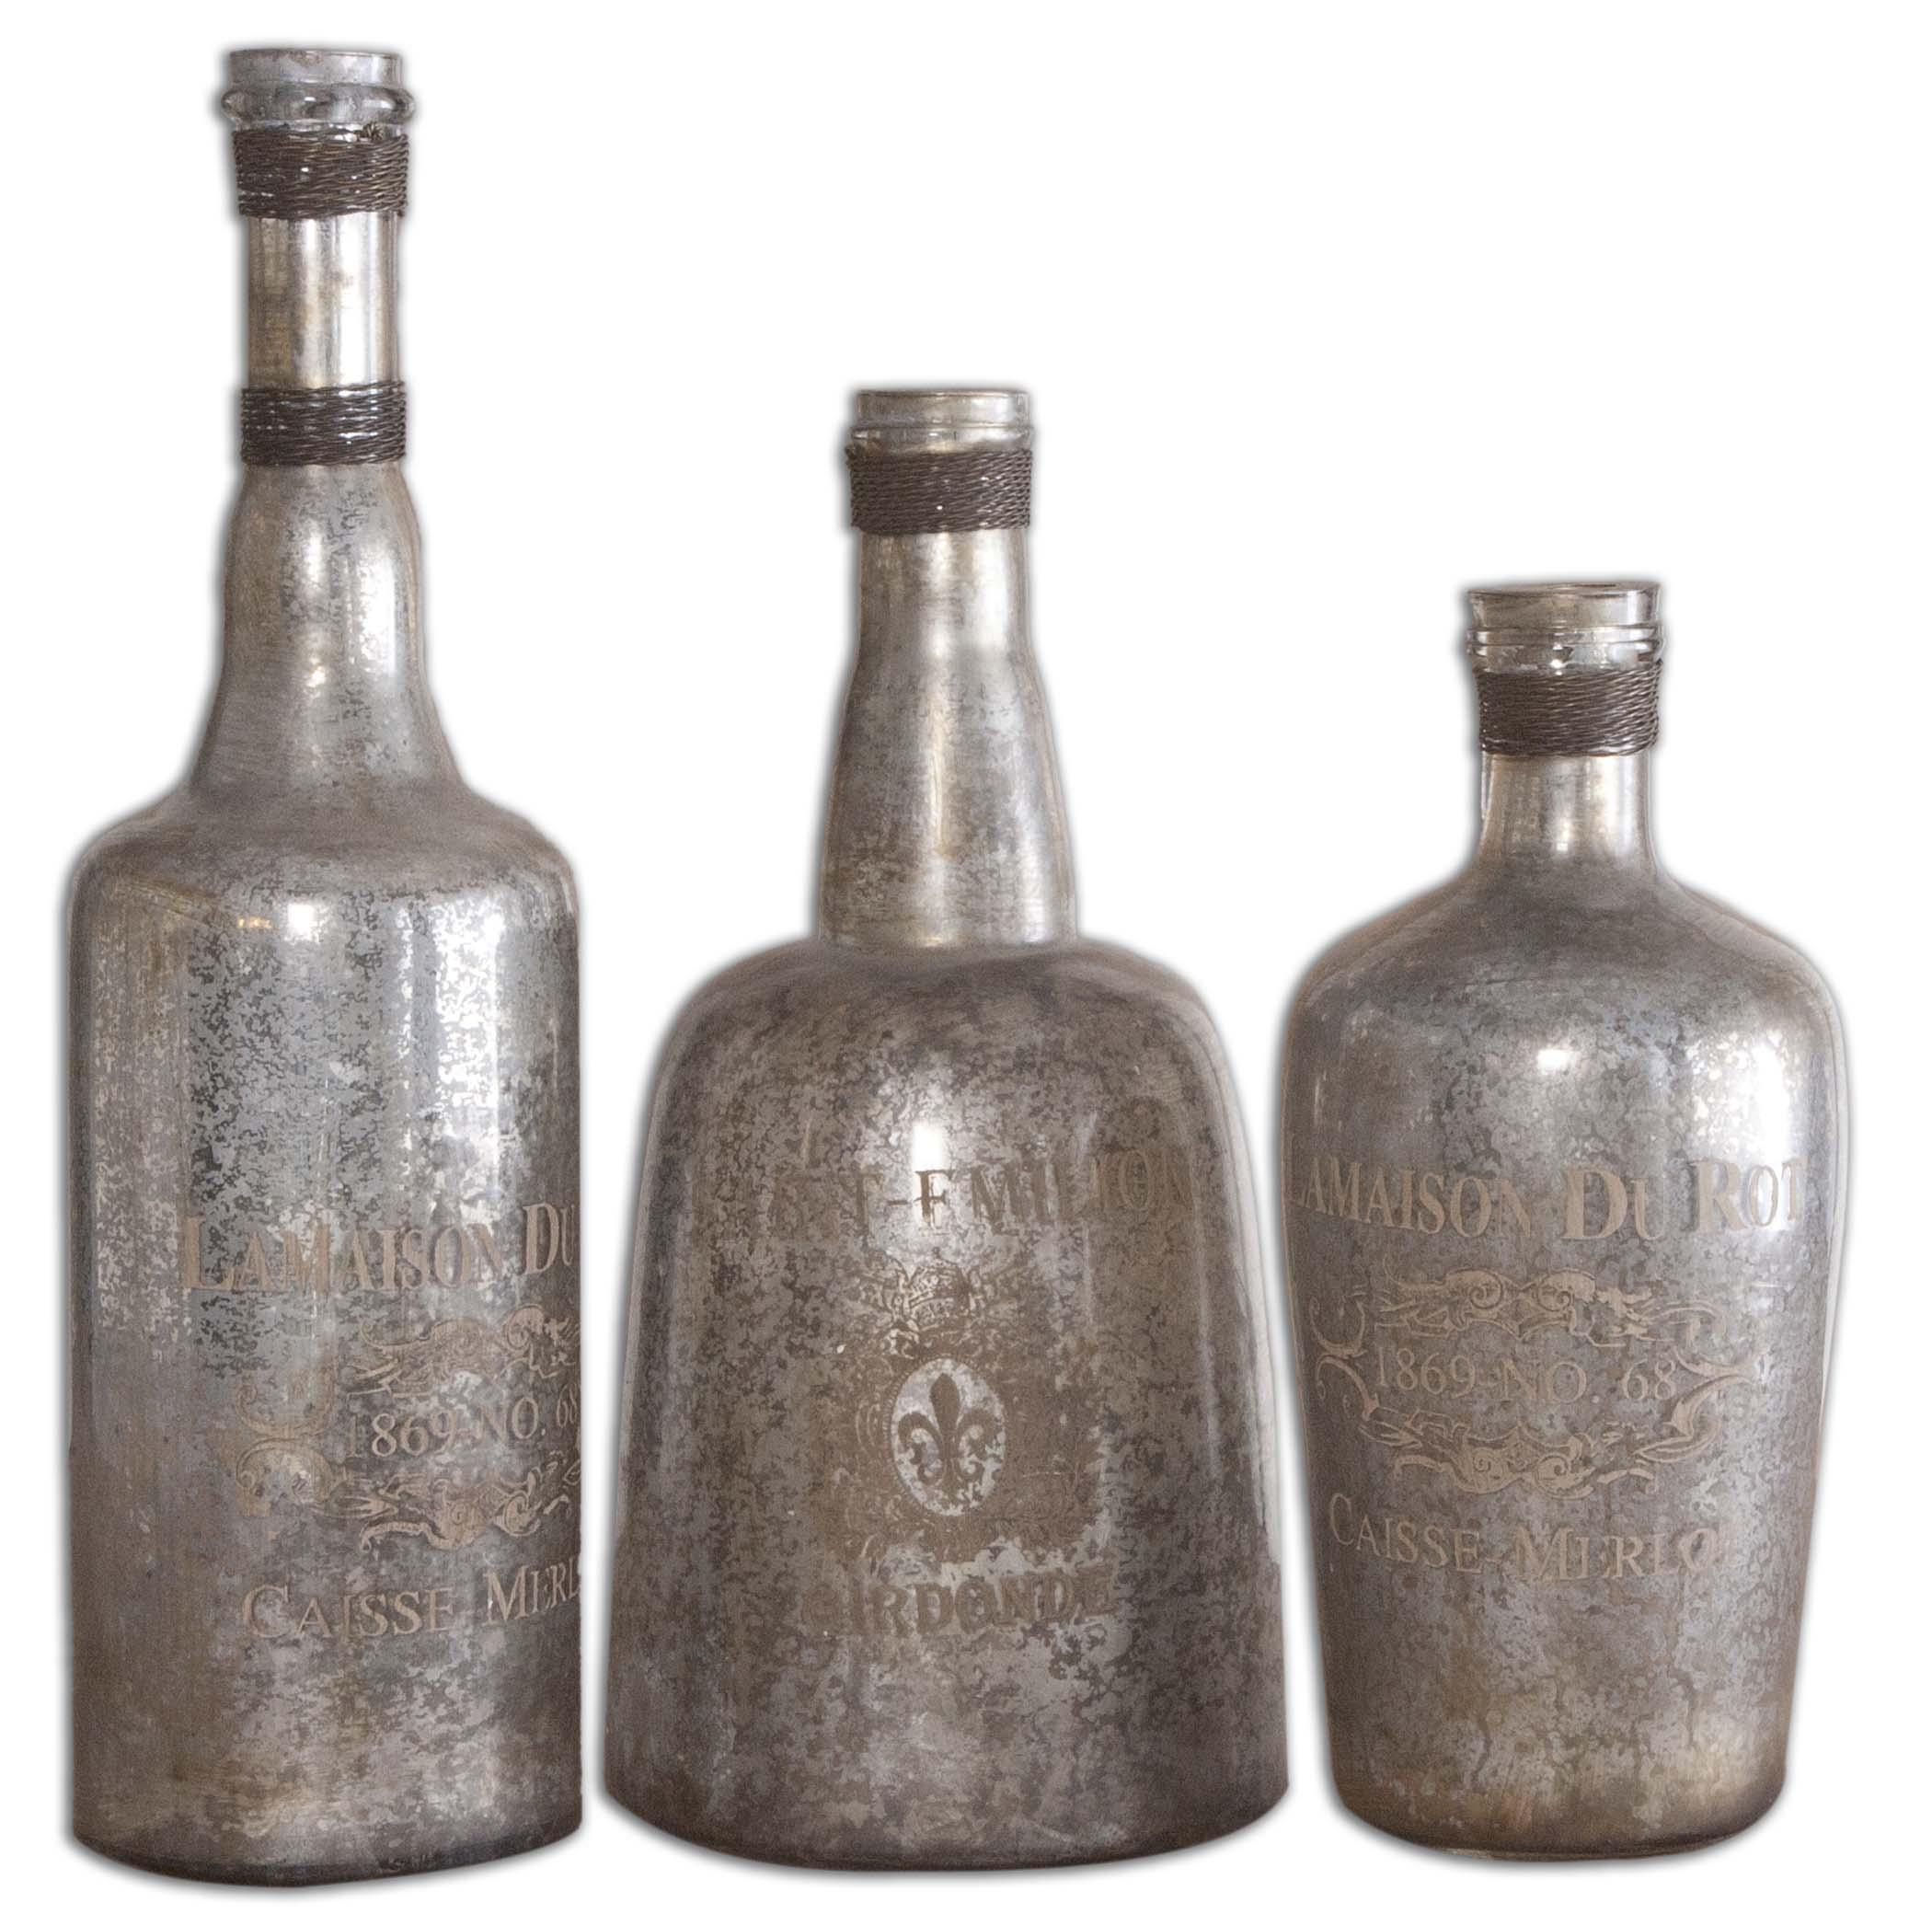 Uttermost Accessories Lamaison Mercury Glass Bottles - Item Number: 19753